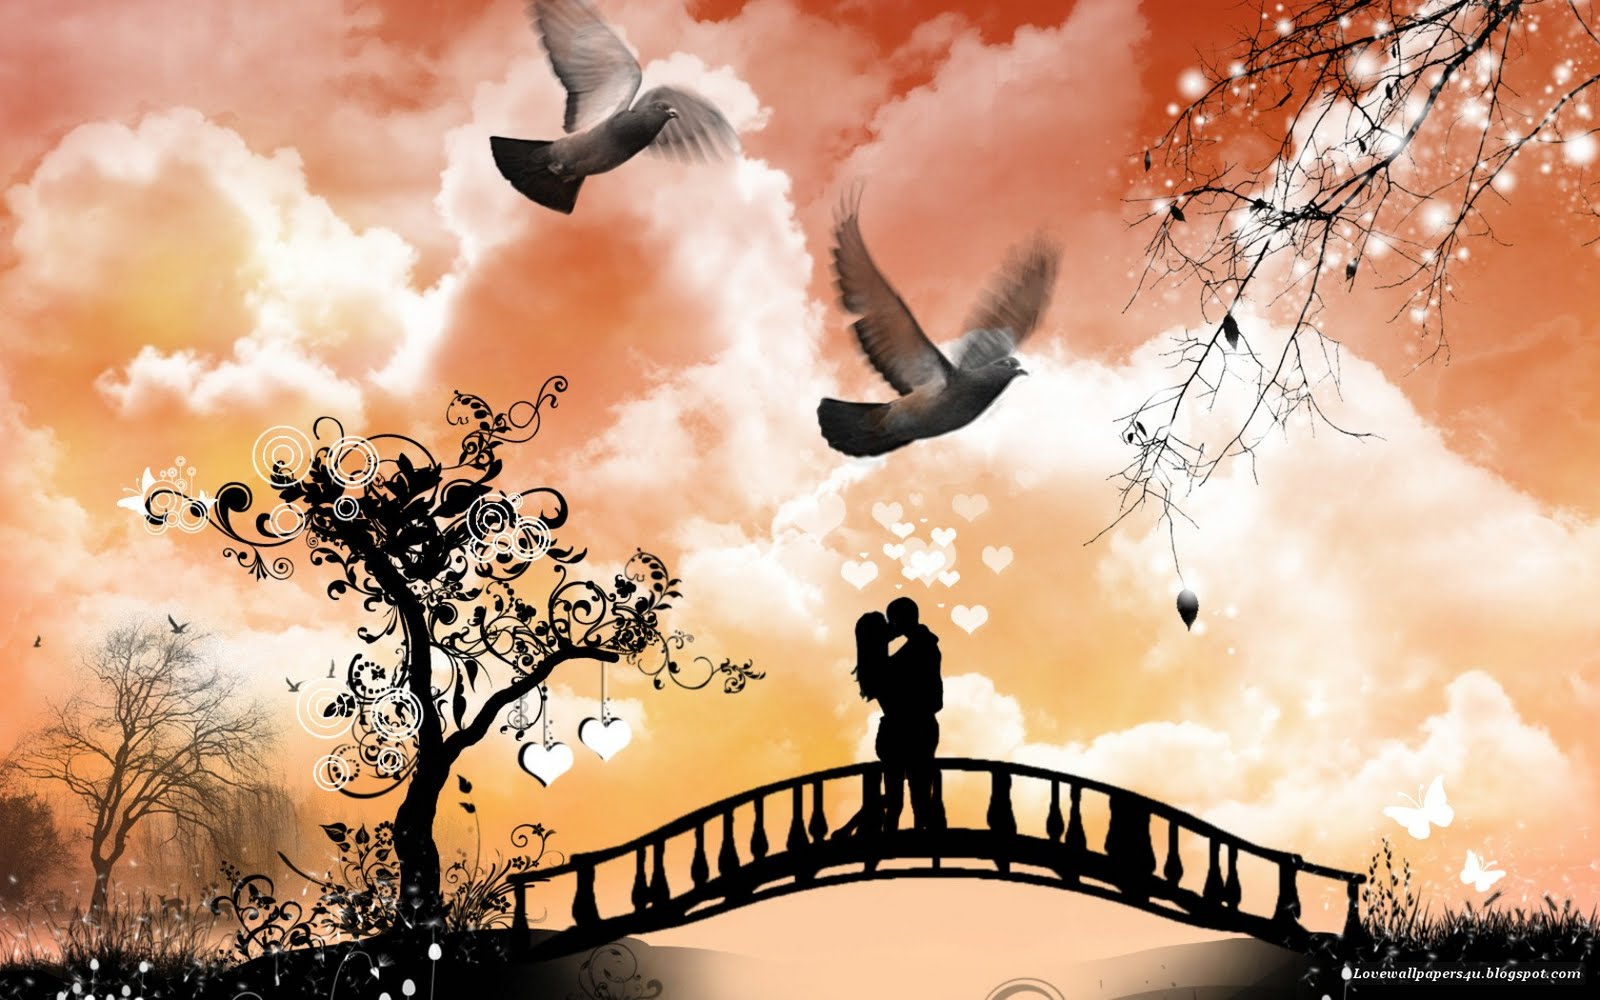 Desktop Wallpaper Romantic Love : Wallpapers - HD Desktop Wallpapers Free Online: Love Wallpapers